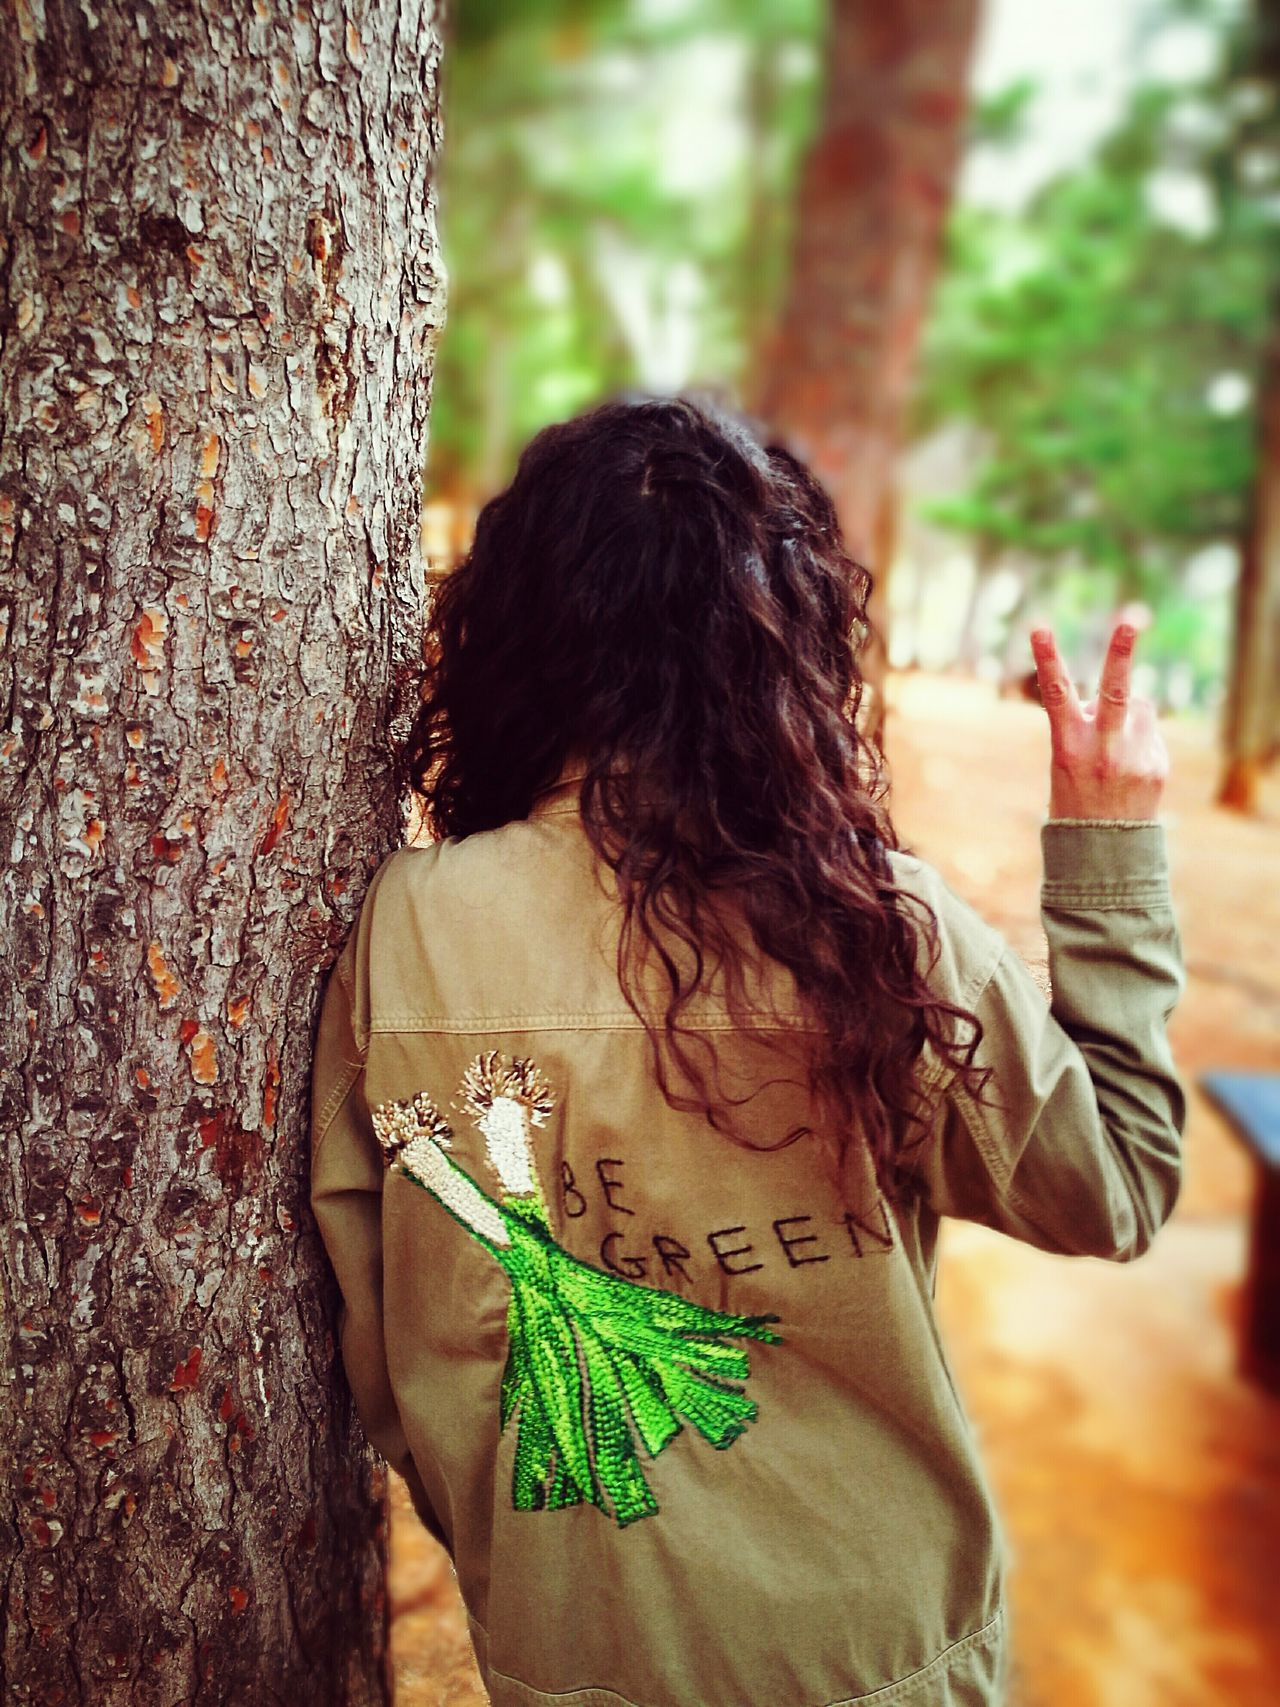 Be Green  Beauty In Nature One Person Rear View Real People Lifestyles Day One Woman Only Human Hand Be Green🍃 Wood Uncultivated Outdoors Growth Tree